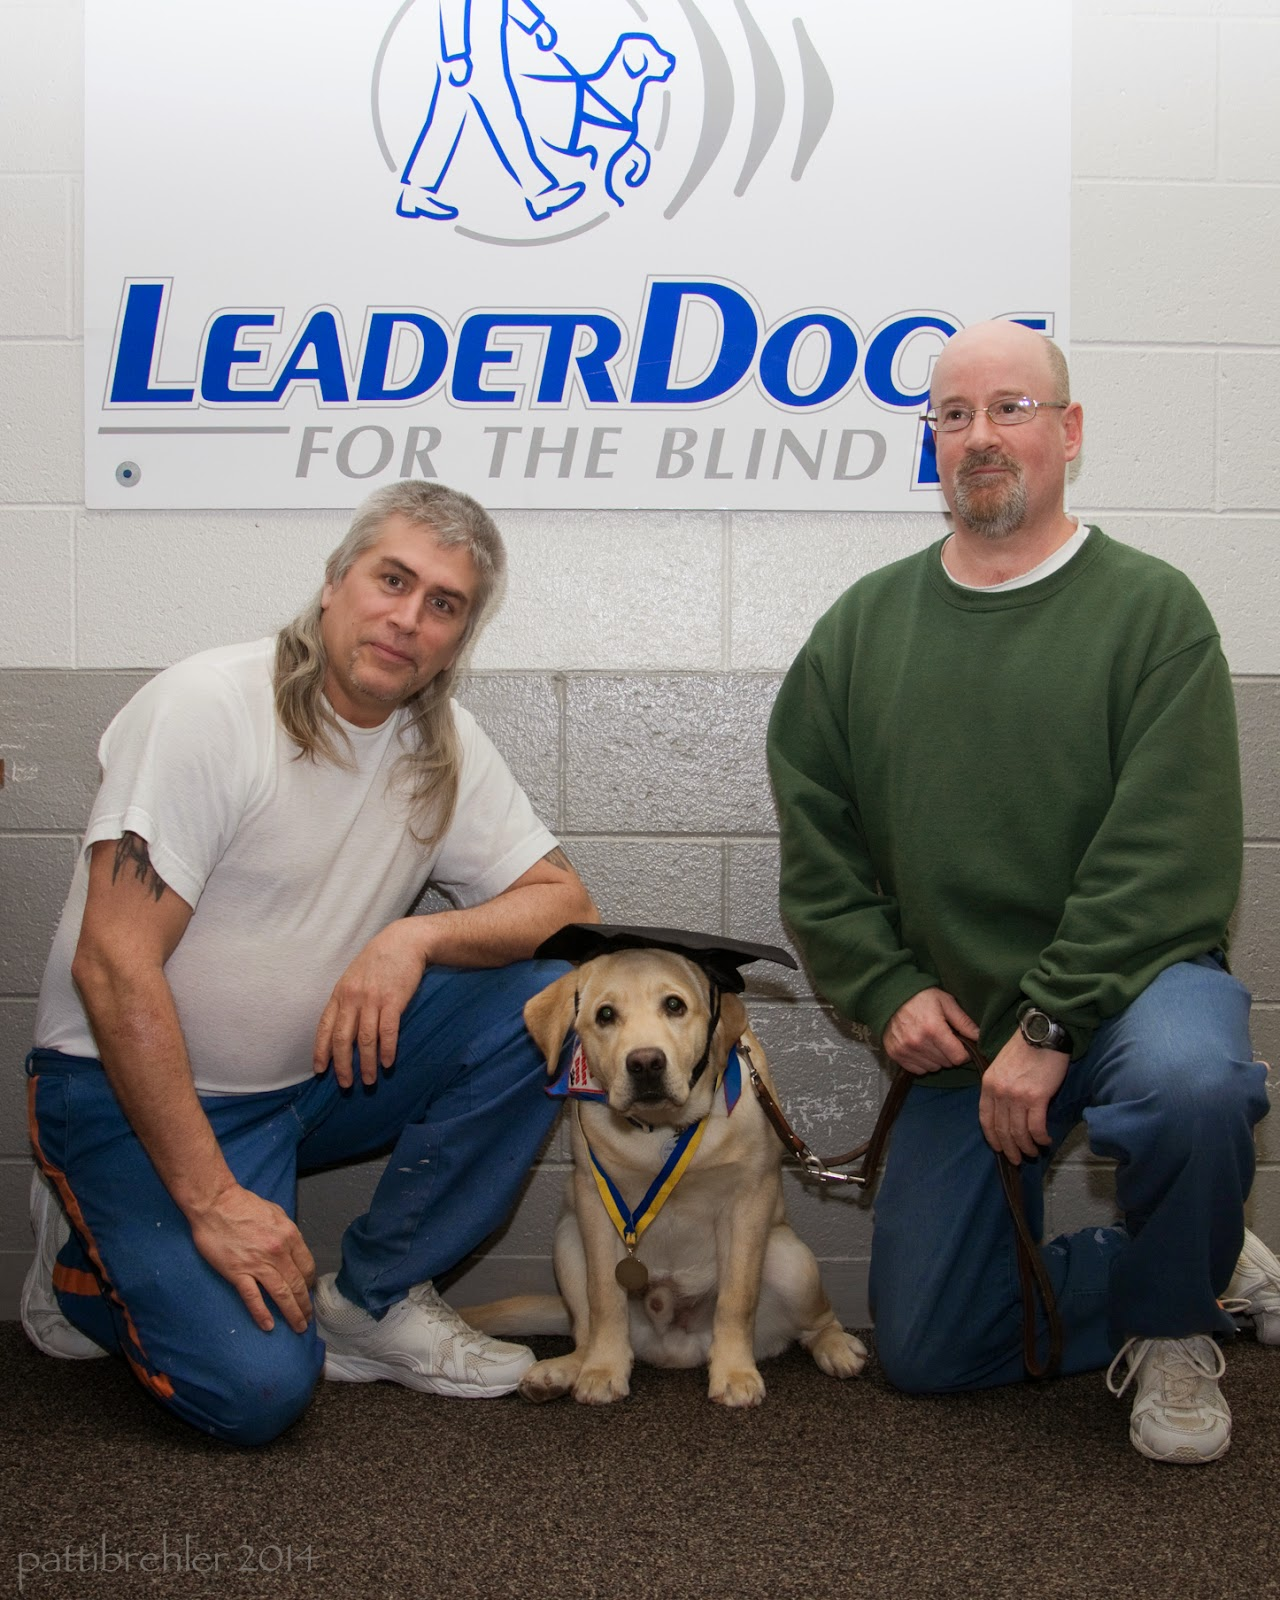 Two men are kneeling on one knee in front of a Leader Dogs for the Blind banner, looking at the camera. The men are wearing blue prison pants, the man on the left is wearing a white t-shirt and the man on the right is wearing a green sweatshirt. Between them is a young yellow lab that is sitting looking at the camera with a graduation cap on his head.